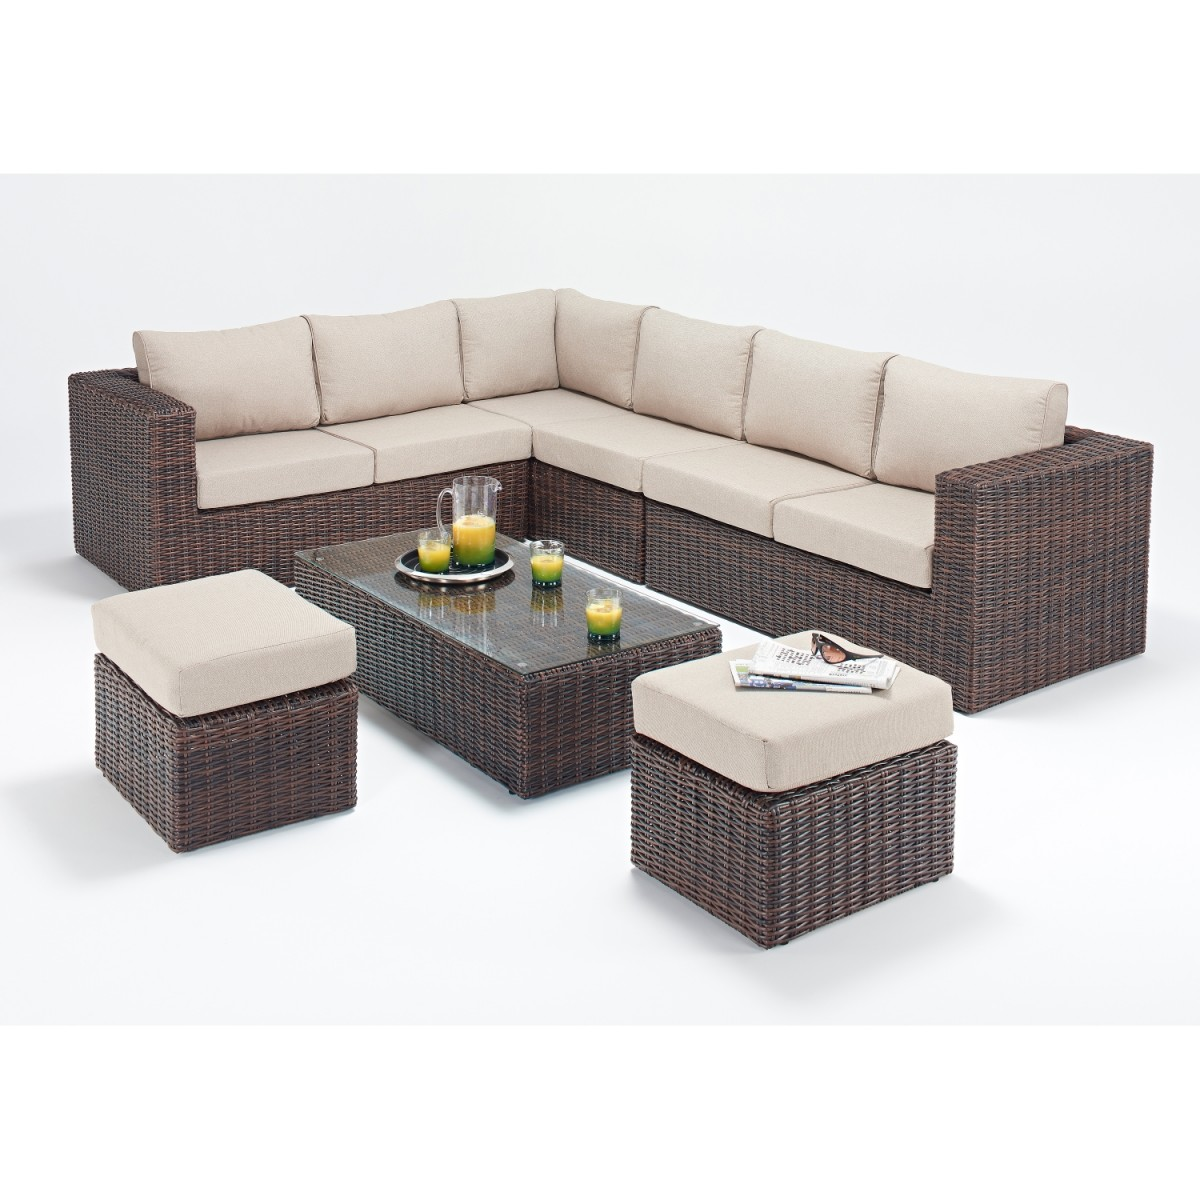 Rattan Sets Windsor Large Corner Sofa Set Wgf 2702 Left Hand